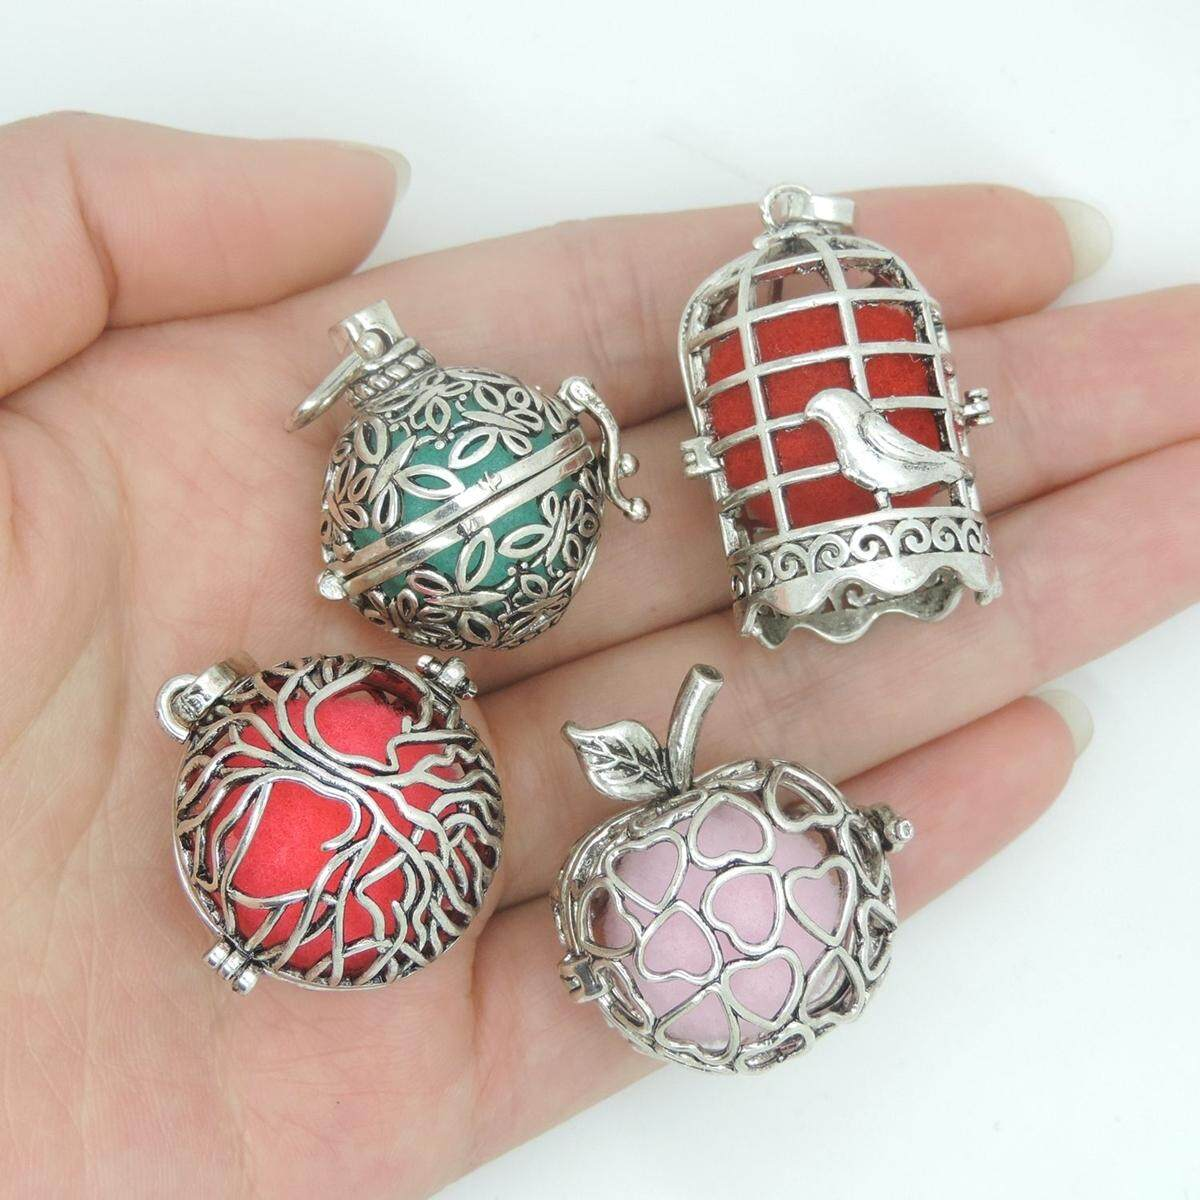 4pcs Cage Perfume Essential Oil Aromatherapy Locket Necklace & 12 Diffusion Ball By Glimmer